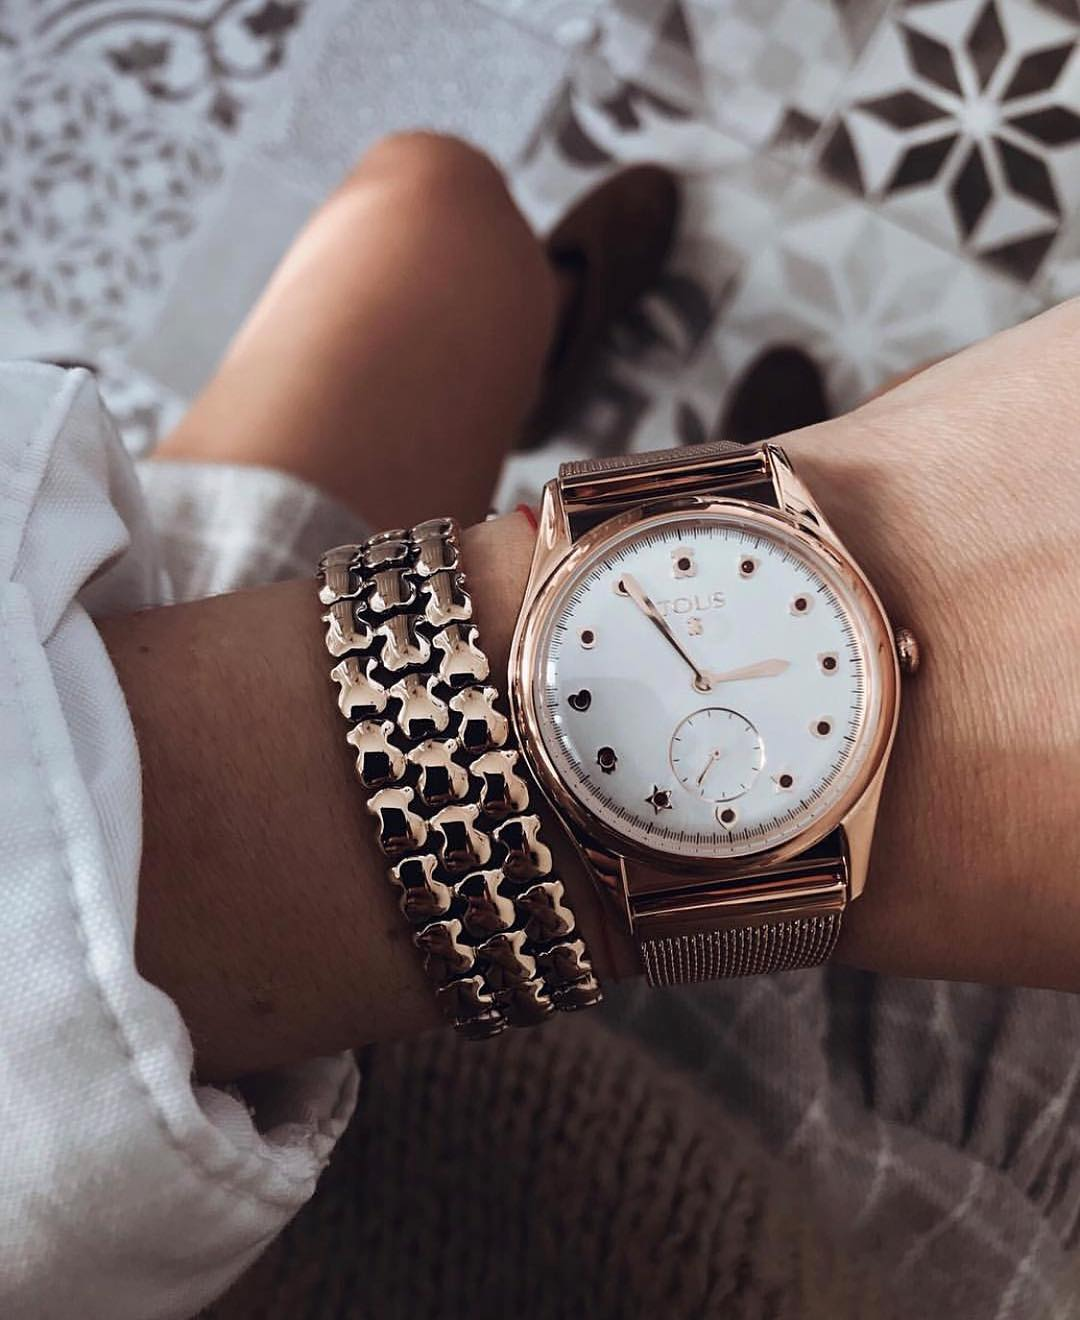 watch design Rose gold Tous watch on wrist with a gold bracelet